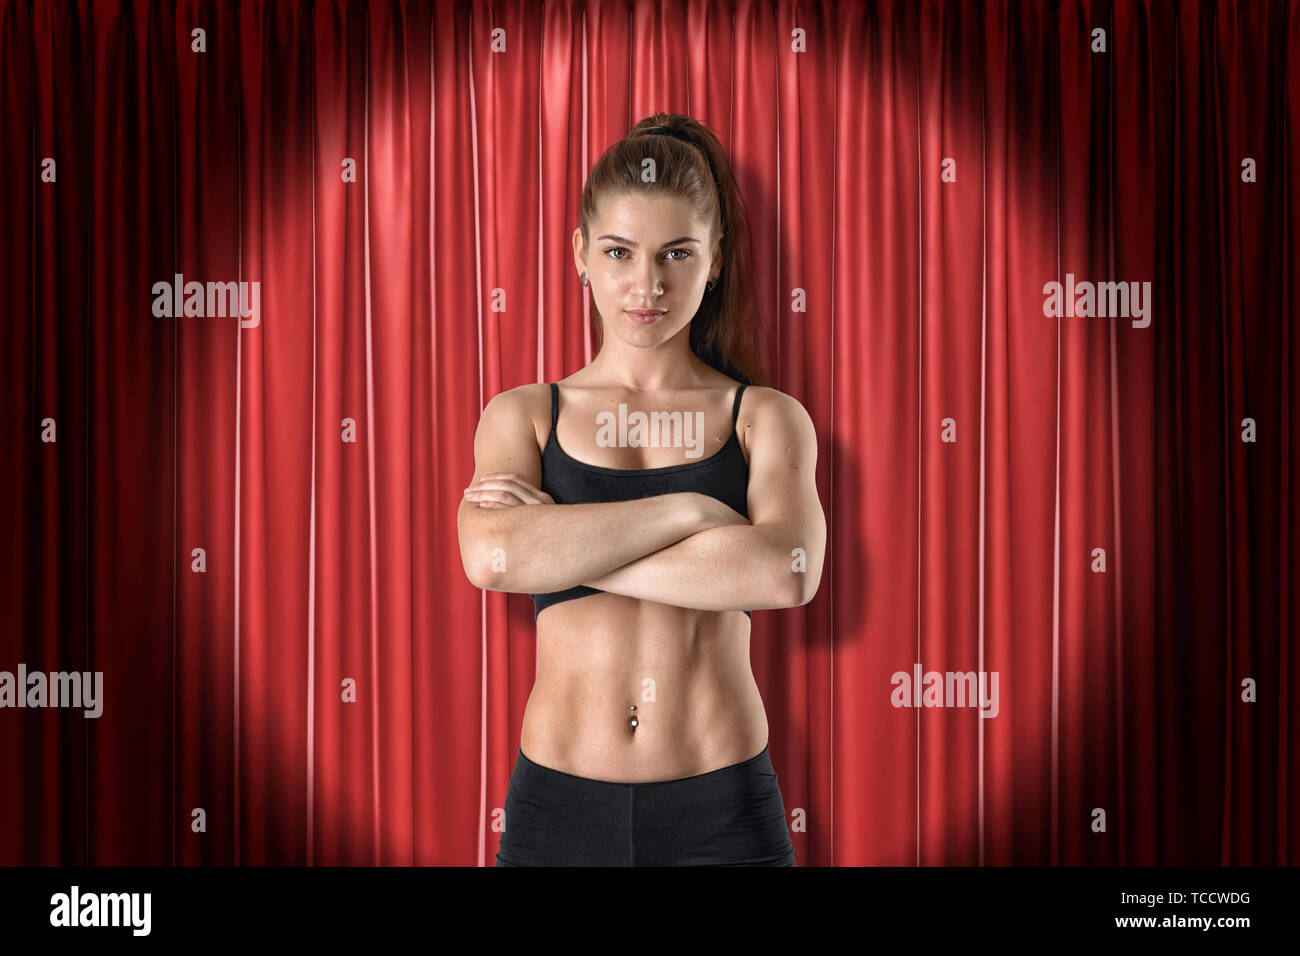 Front crop image of fit confident woman in crop top, standing with arms folded, in spotlight at red stage curtain. - Stock Image